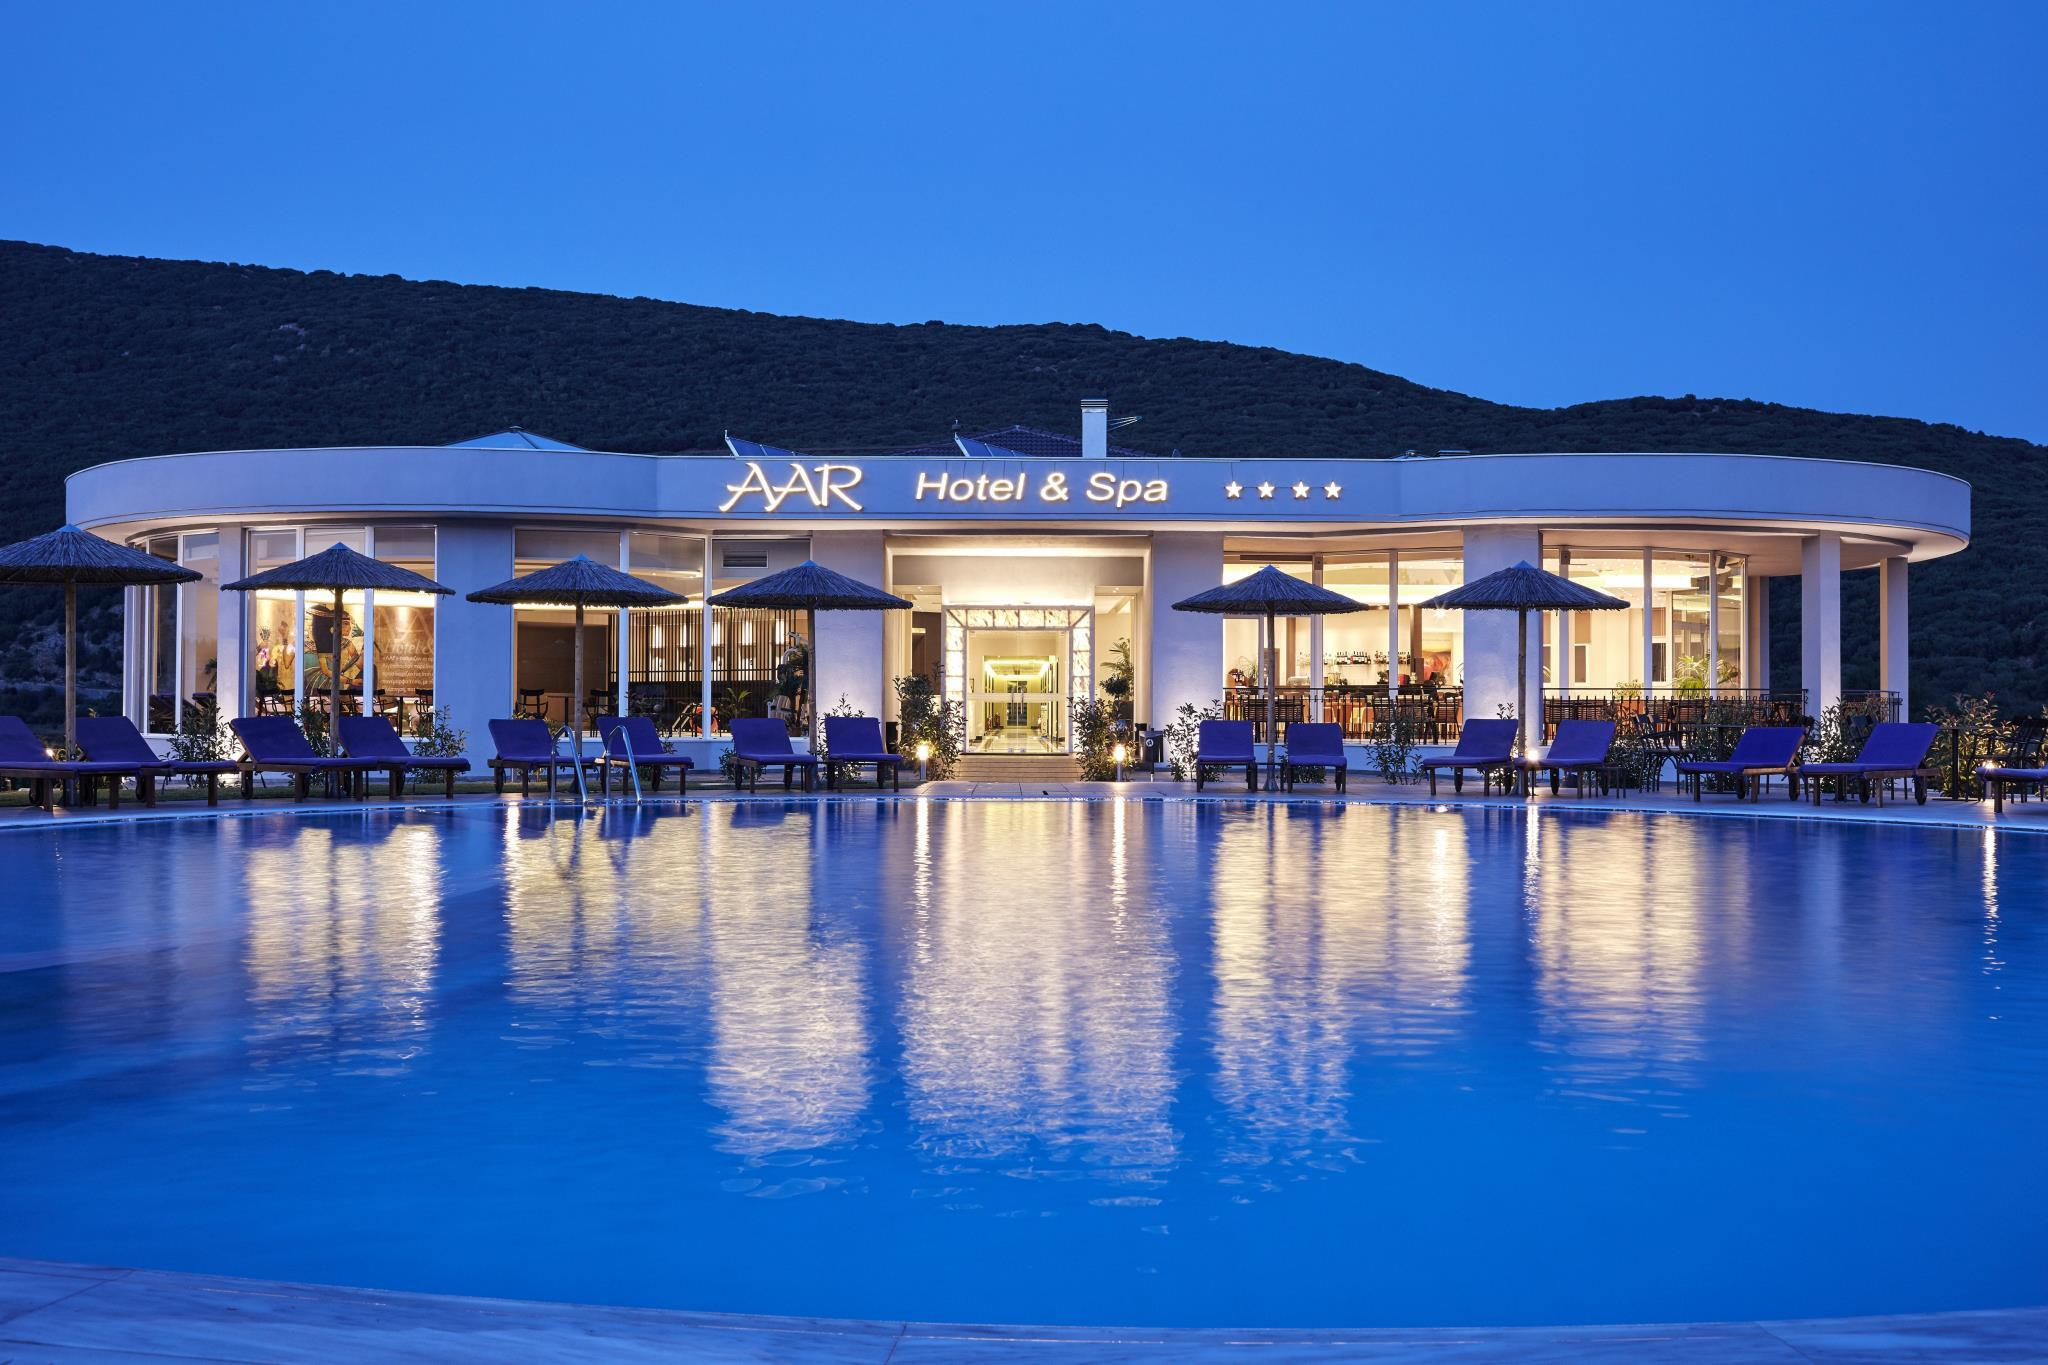 Aar Hotel And Spa